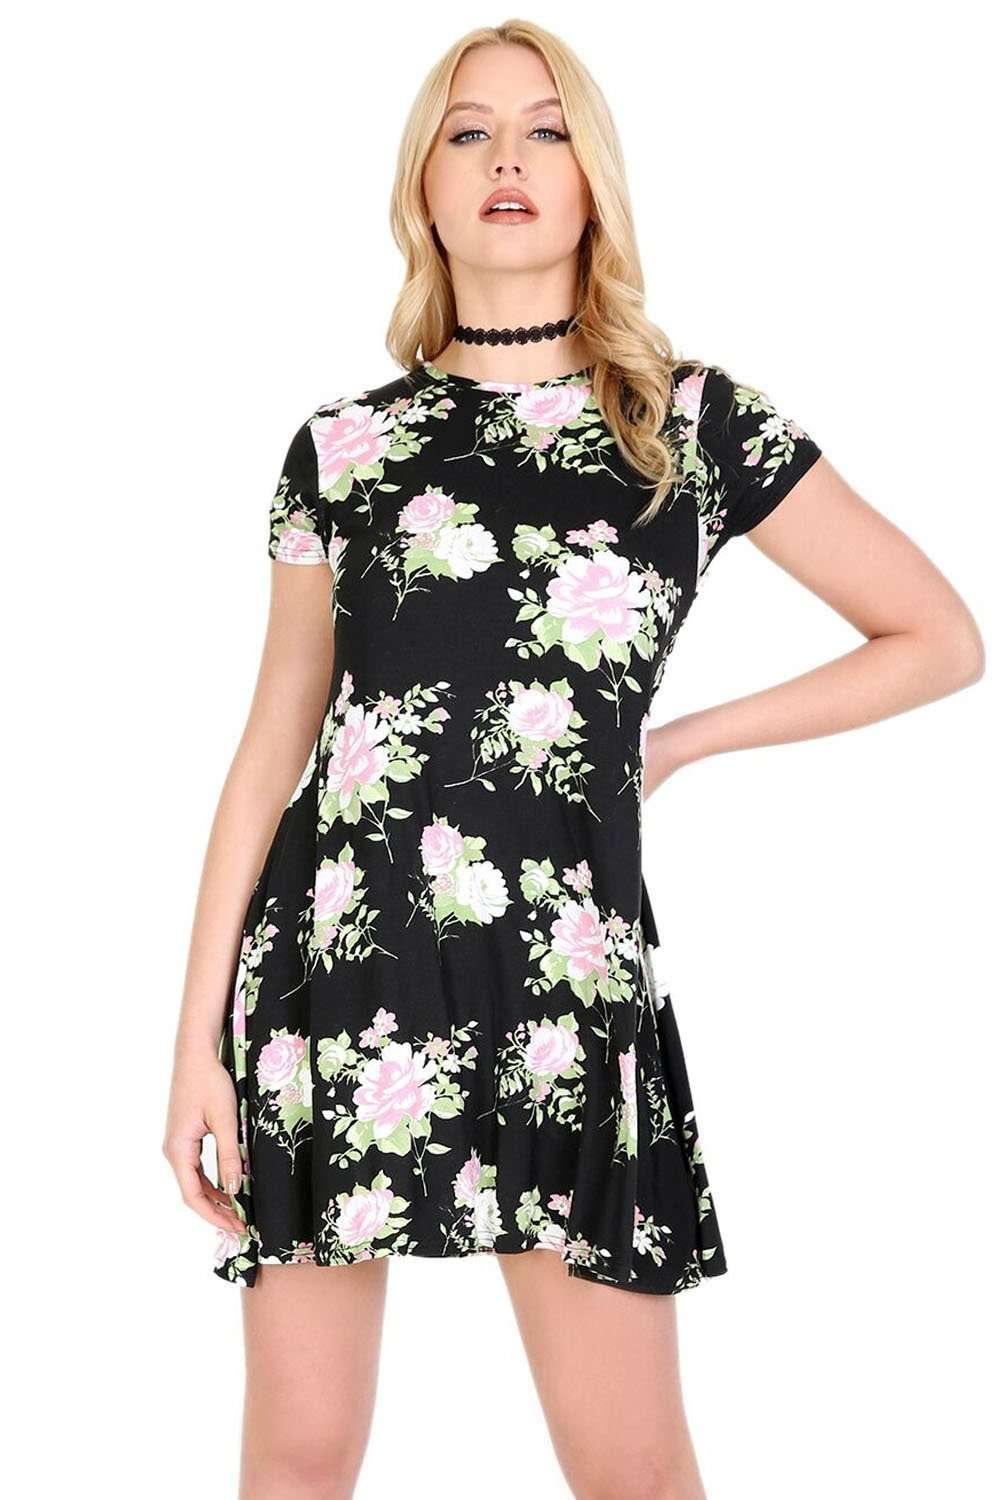 Black Floral Short Sleeve Mini Swing Dress - bejealous-com